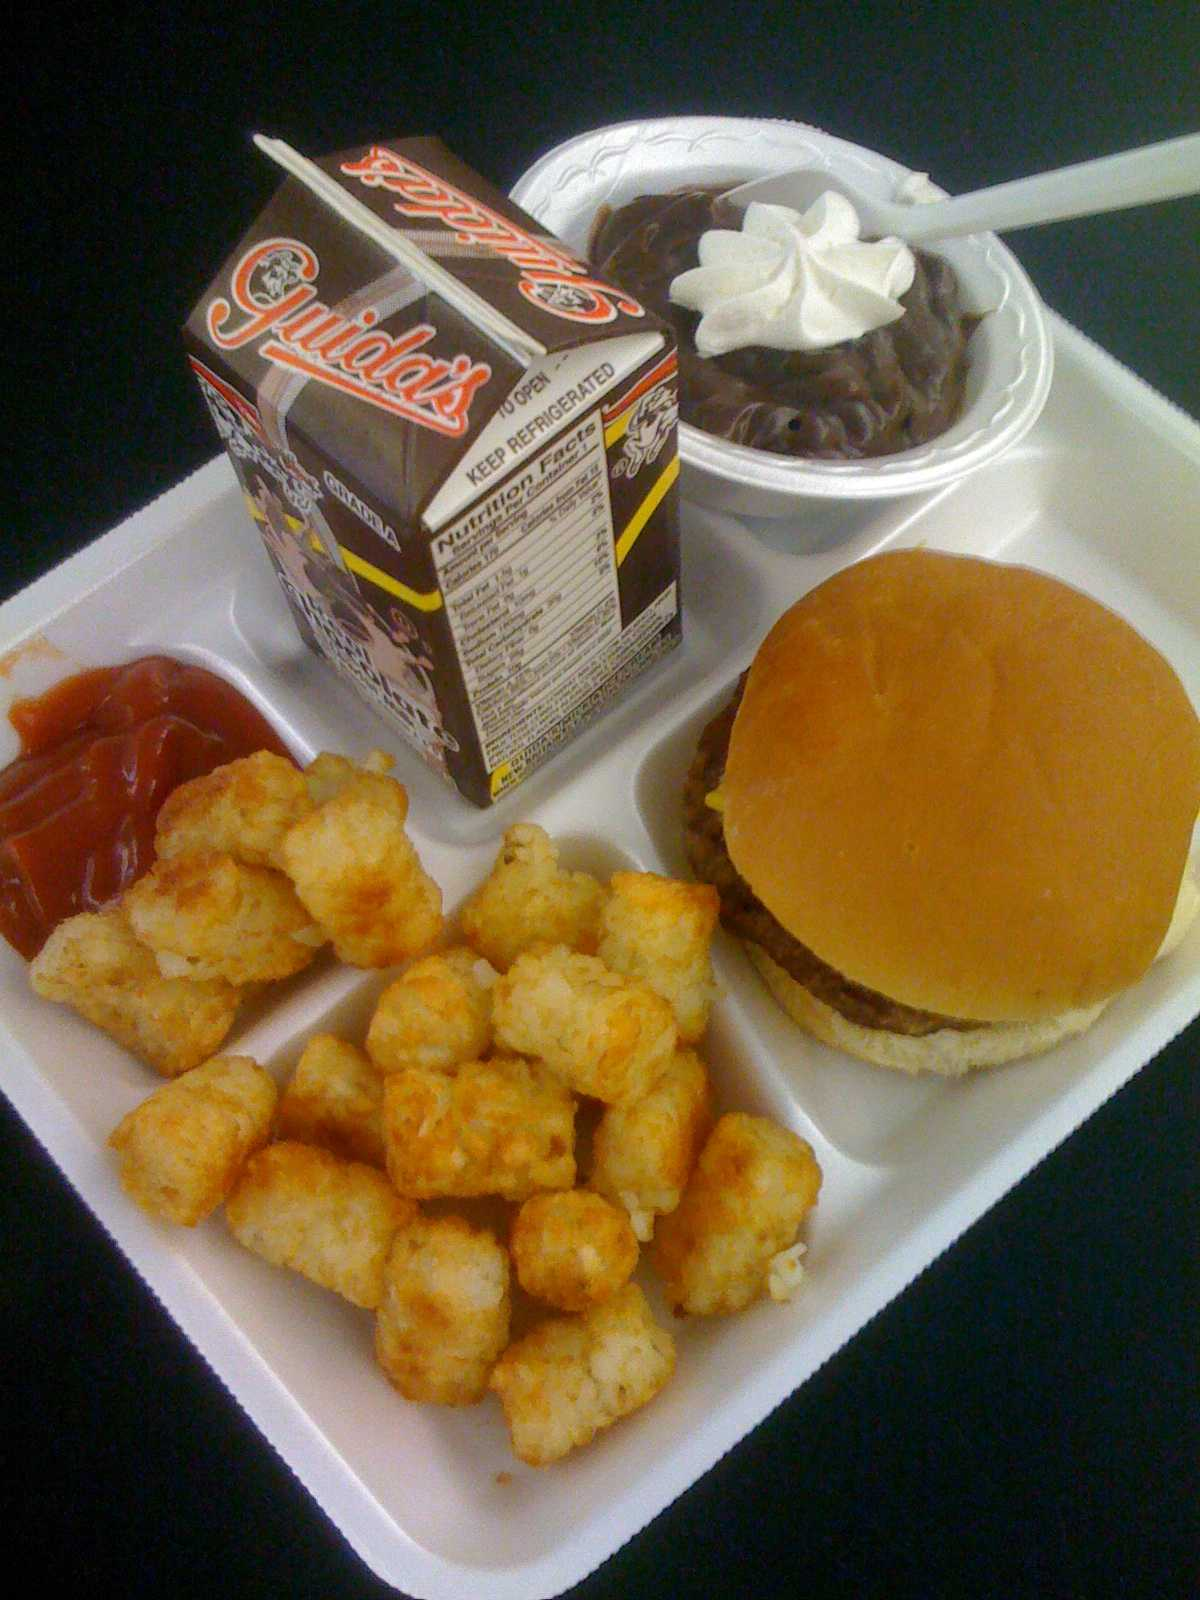 a persuasive essay on school lunches persuasive essay on school lunches online